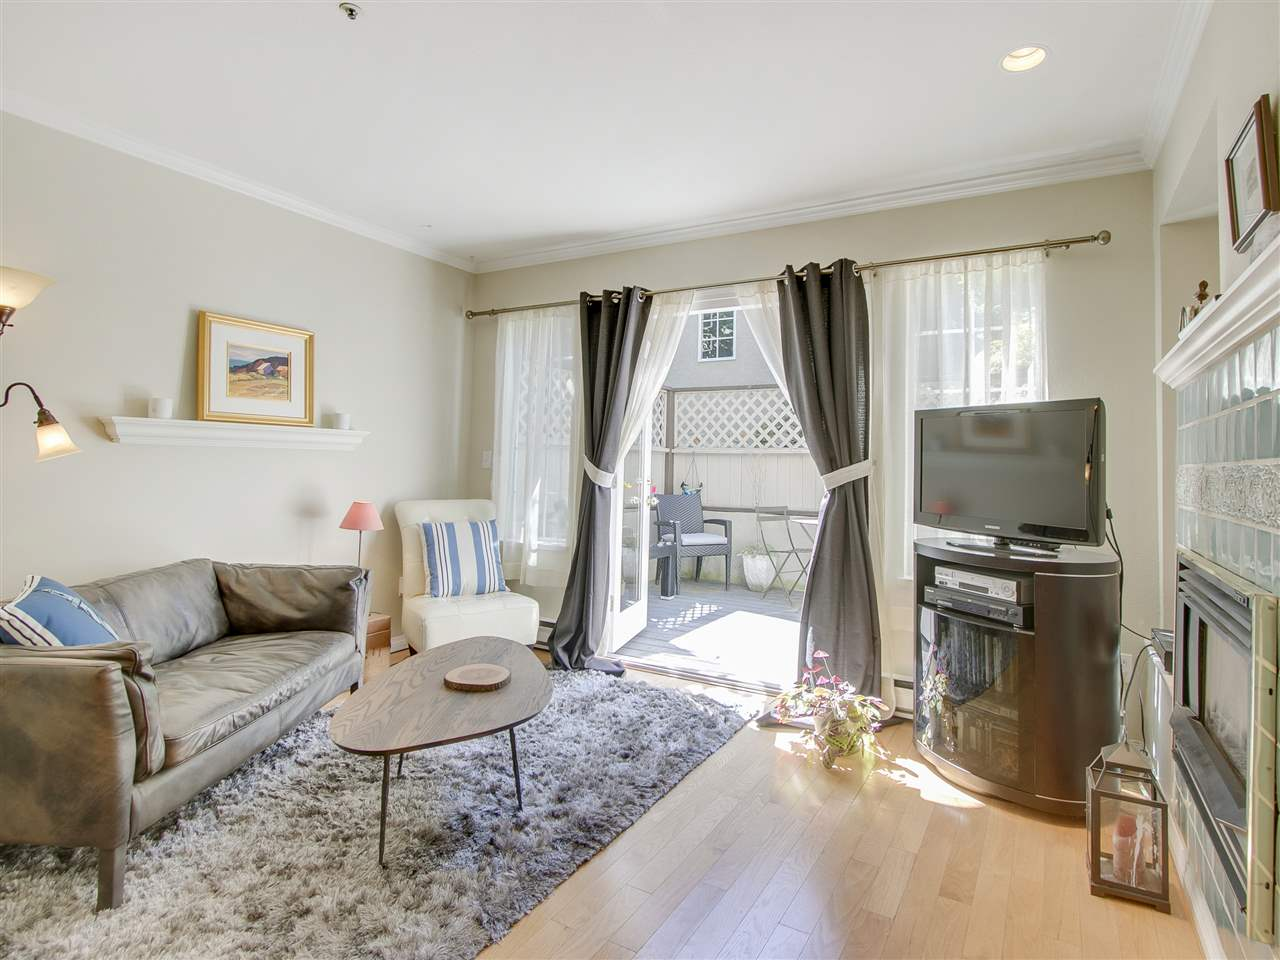 Photo 6: 314 W 15TH Avenue in Vancouver: Mount Pleasant VW Townhouse for sale (Vancouver West)  : MLS(r) # R2186637